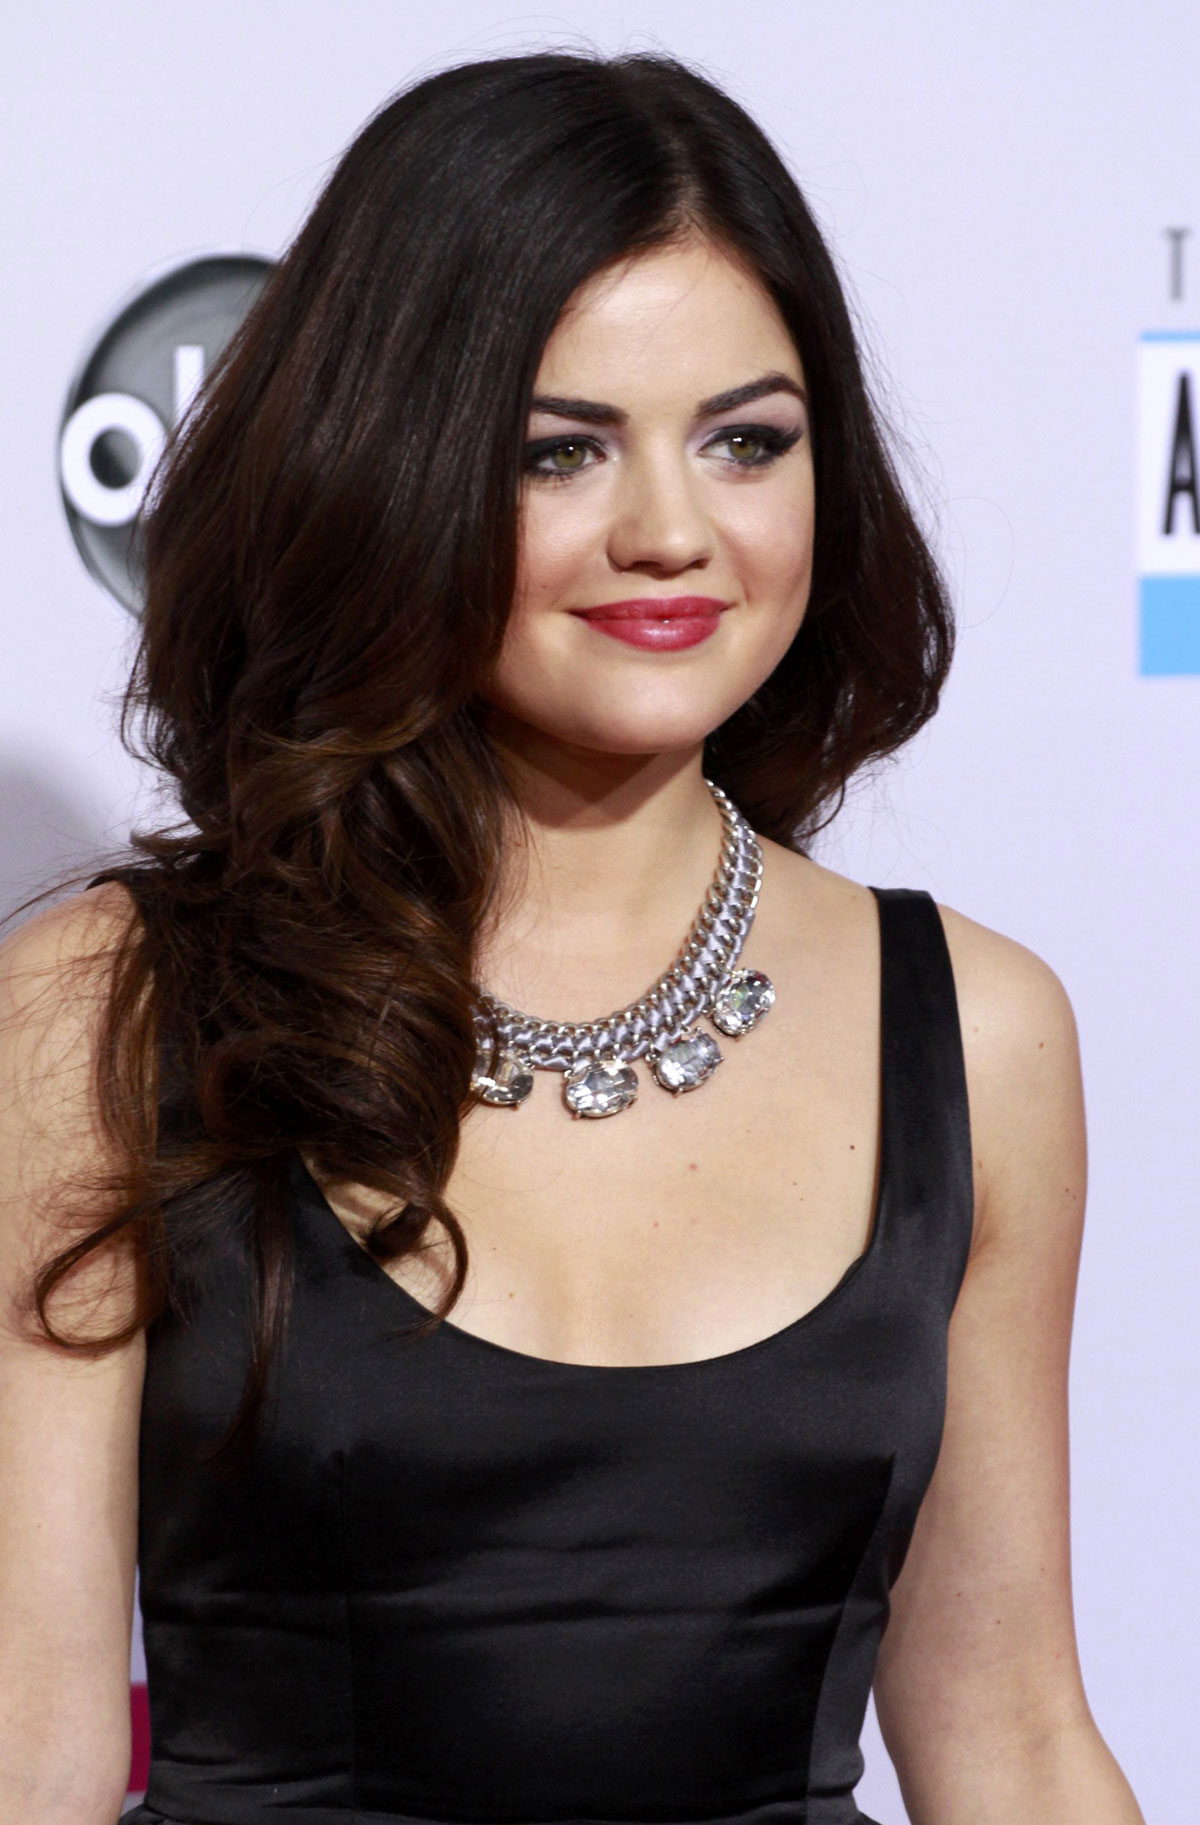 LUCY HALE at 40th Anniversary American Music Awards in Los AngelesLucy Hale